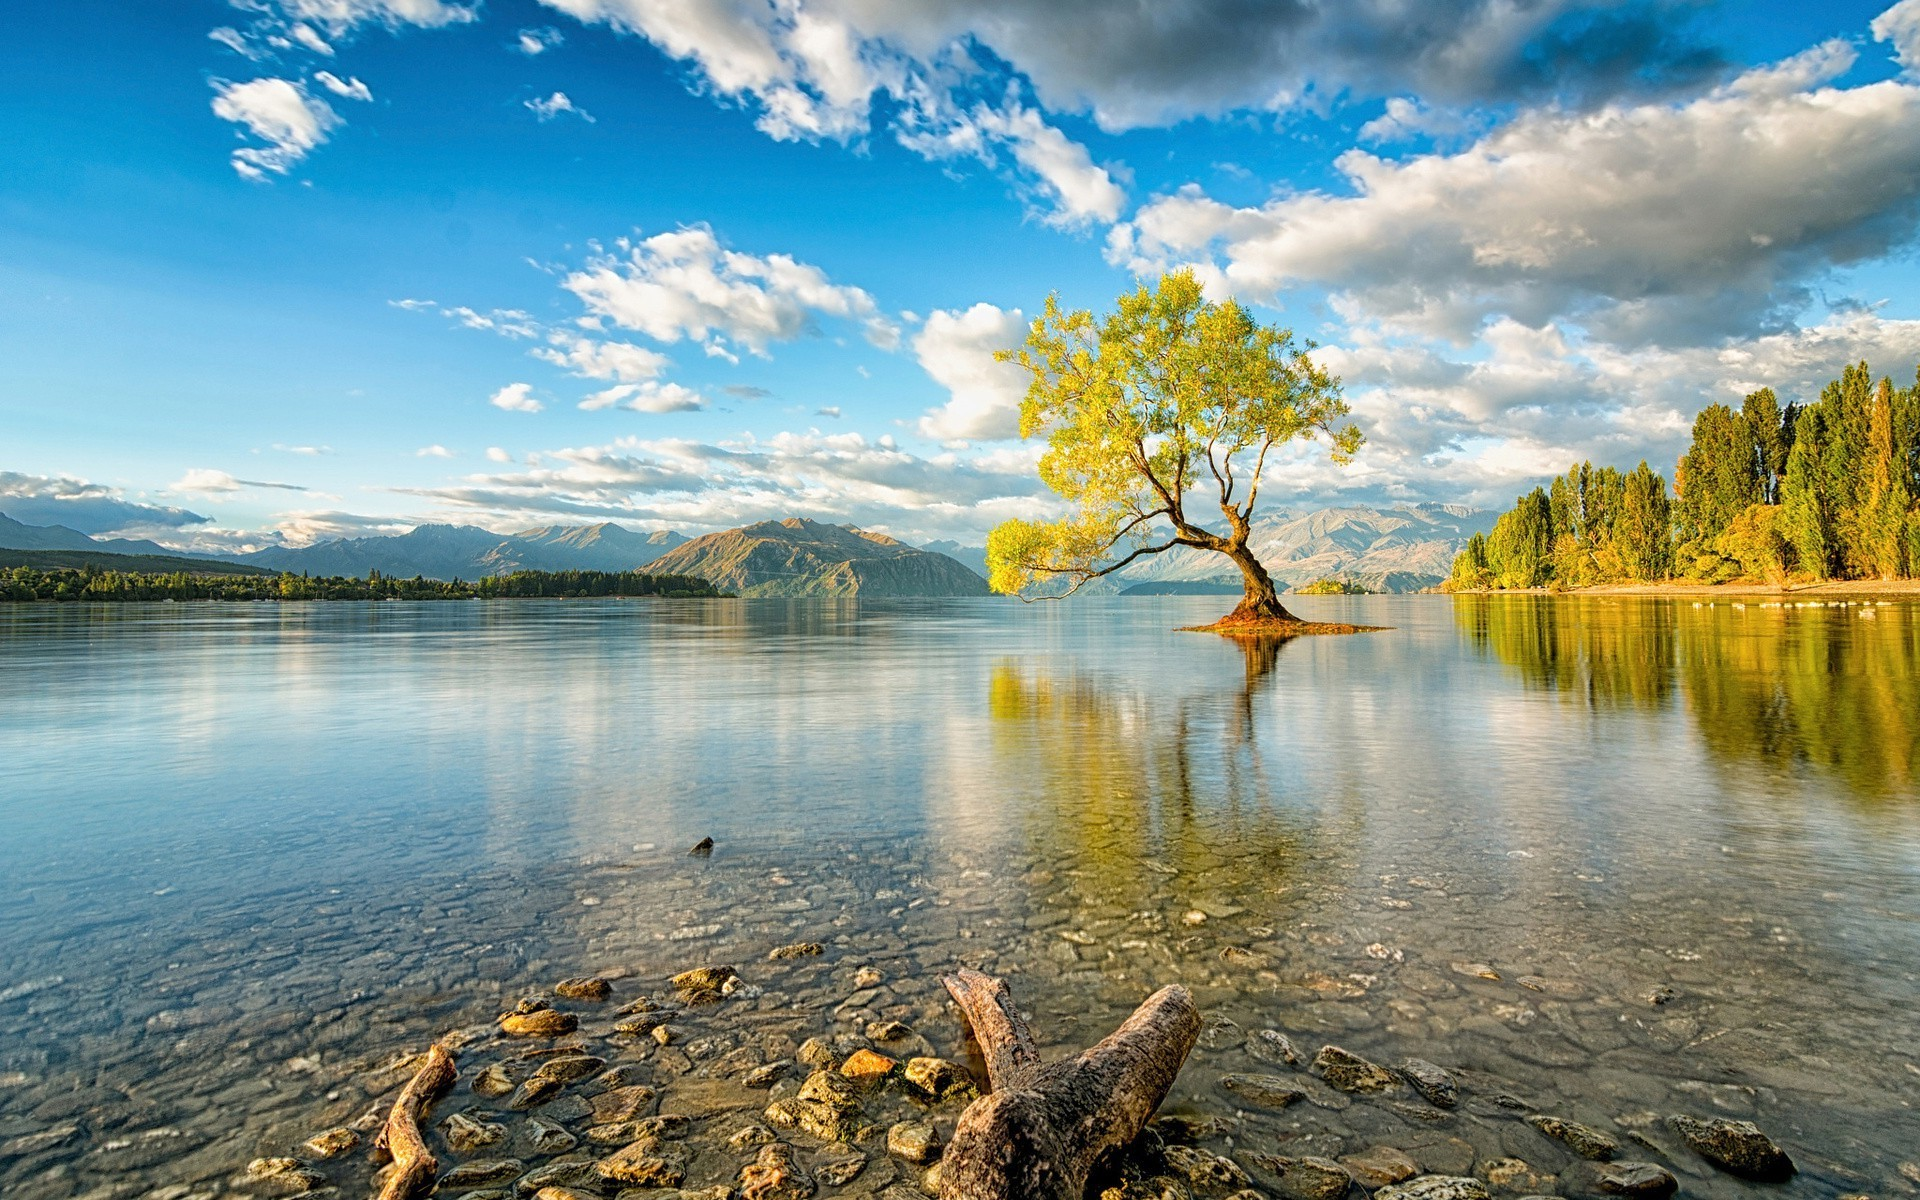 Colorful nature wallpapers 56 background pictures - Colorful nature pics ...